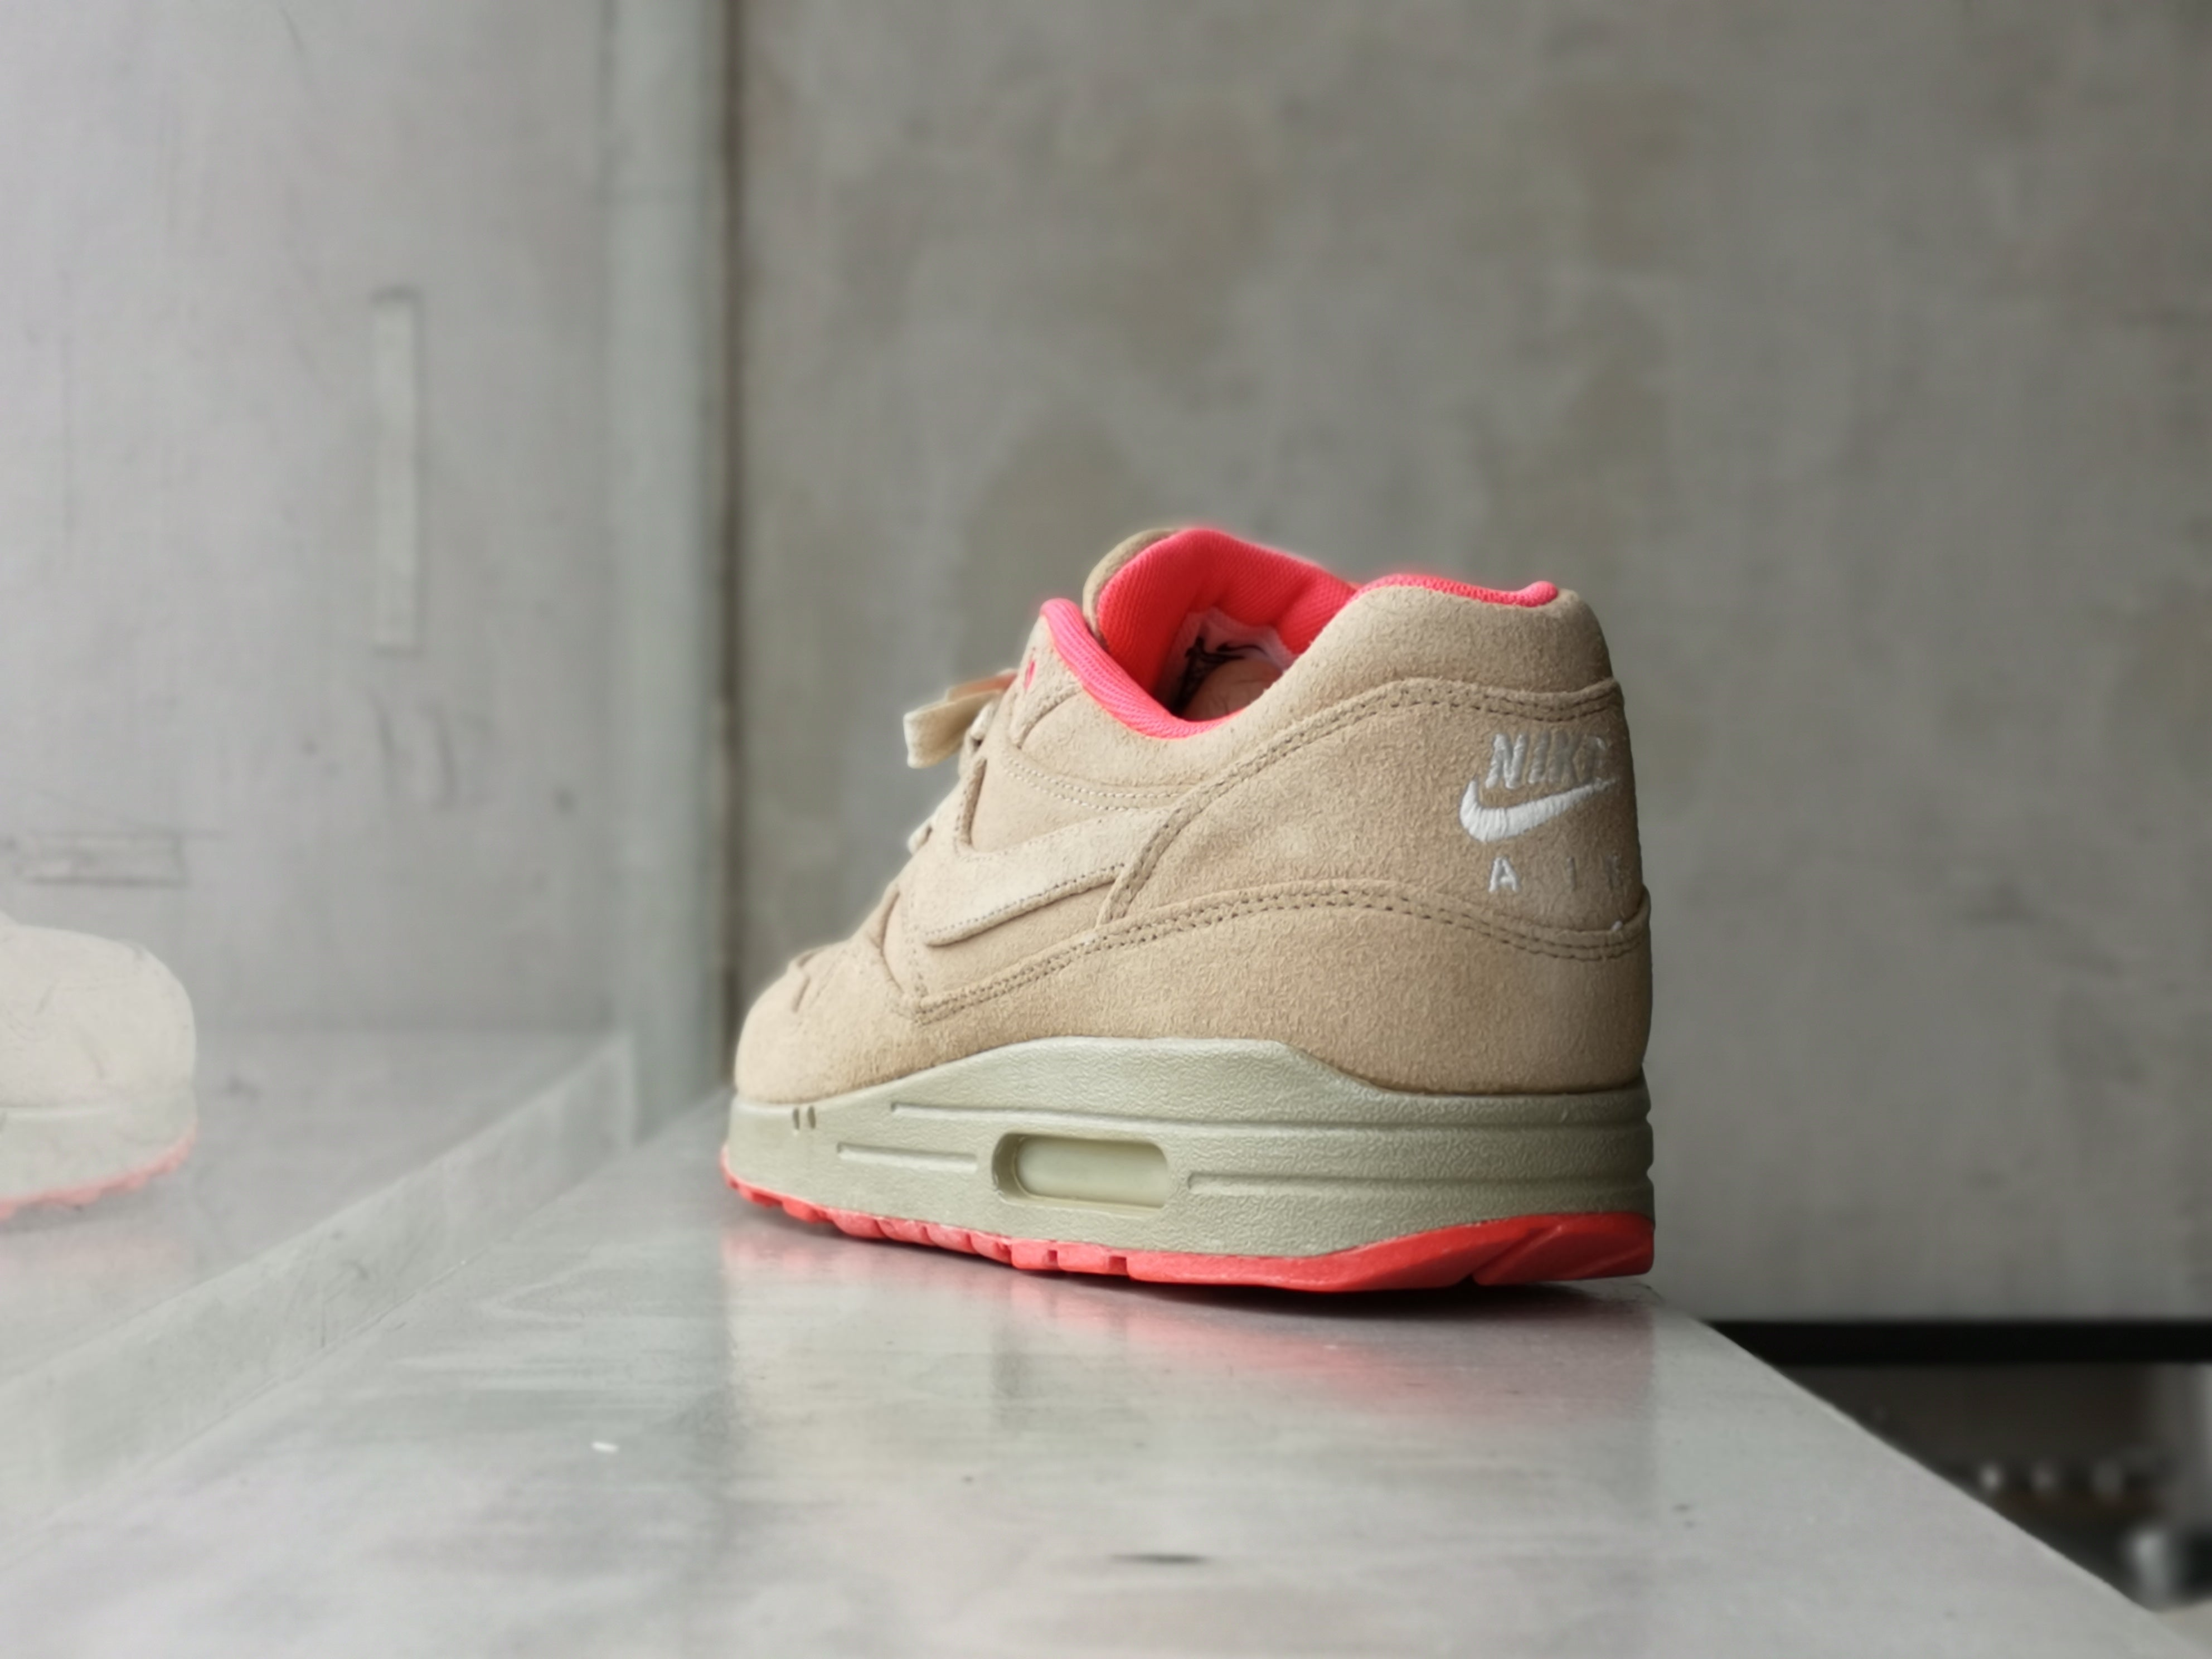 Nike Air Max One Milano QS Linen-Atomic Red 2012